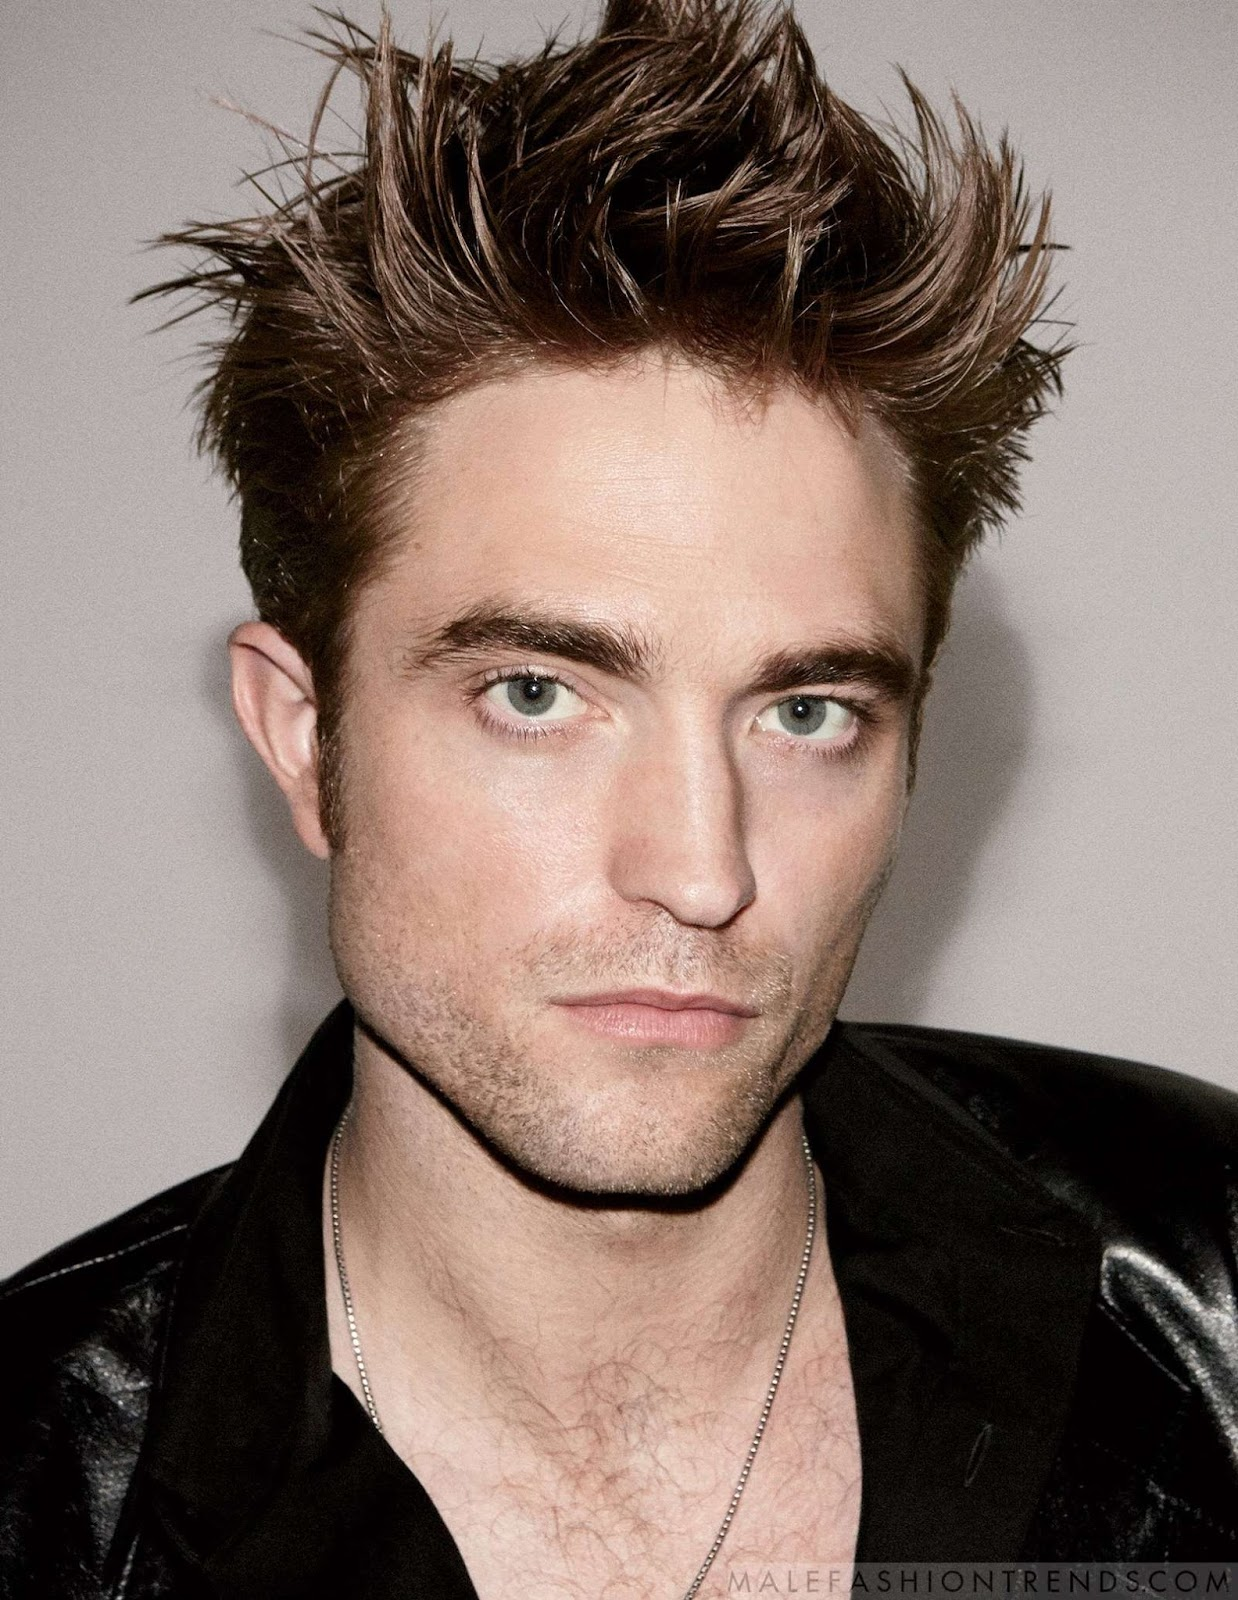 robert pattinson Multiple fans claim they spotted twilight costars and real-life exes kristen stewart and robert pattinson hanging out together irl on february 11th, at edendale, a bar in los angeles' silver lake neighborhood.